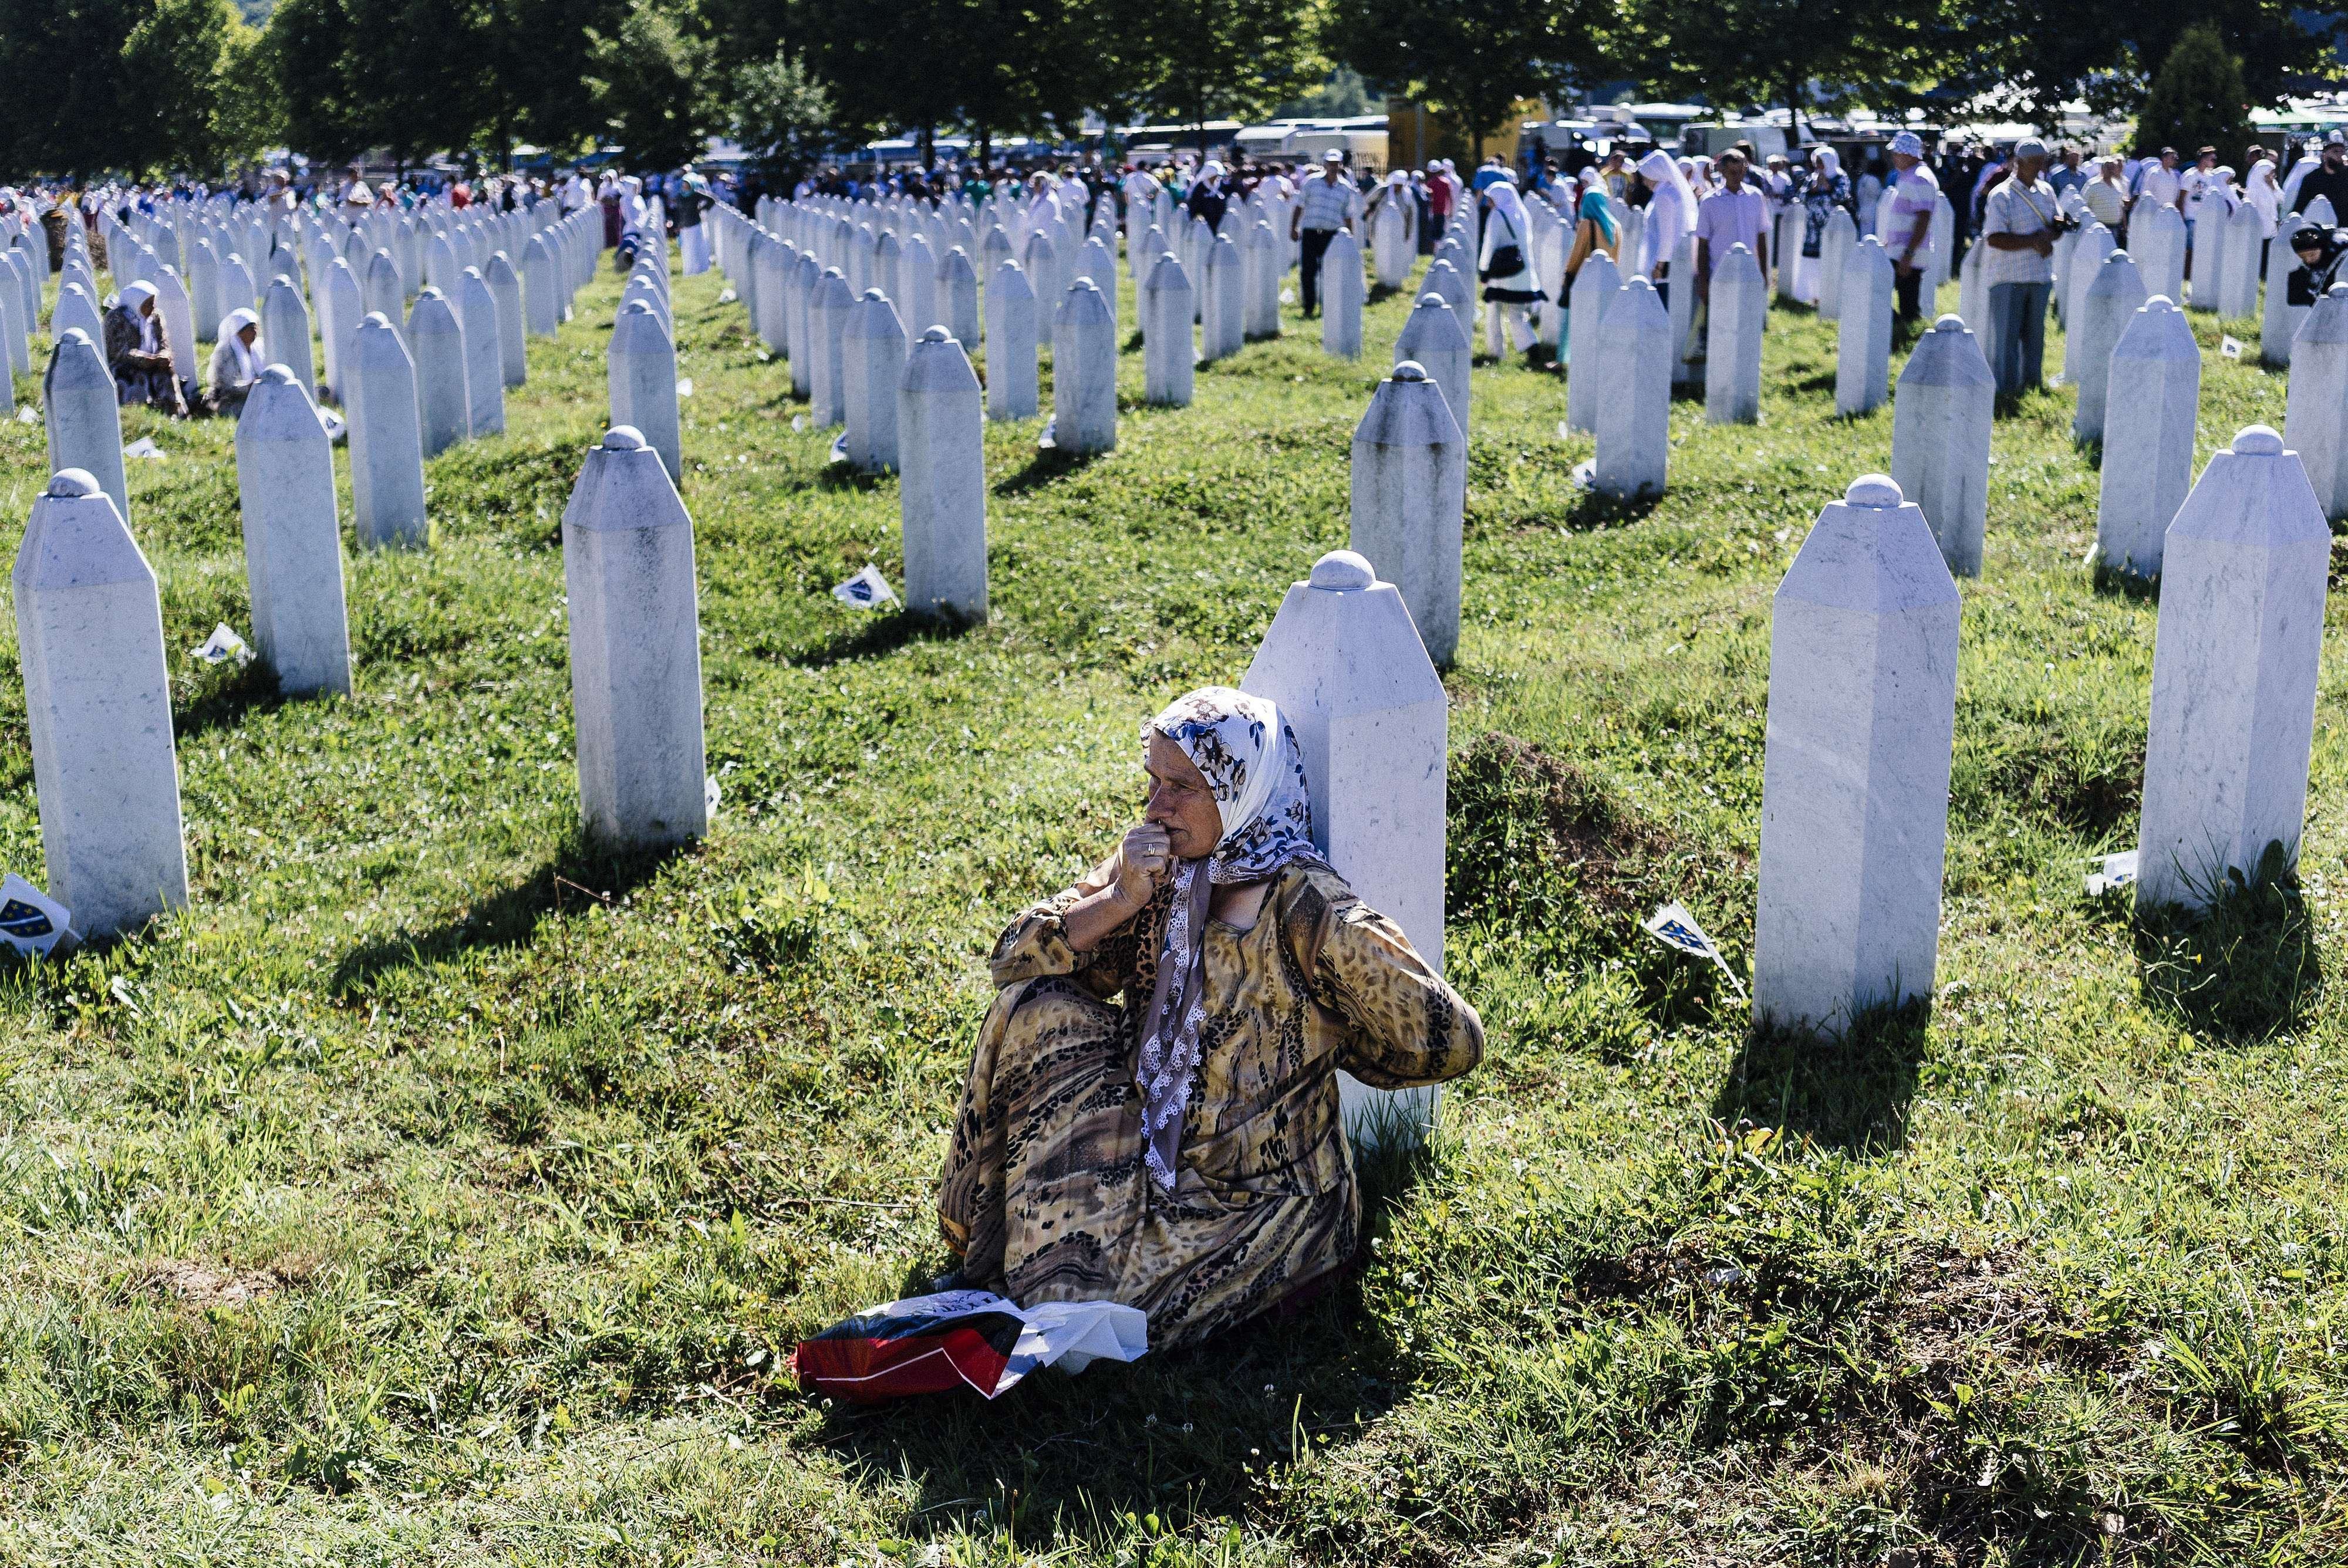 A Bosnian woman mourns at the grave of a relative on July 11, 2015 at the Potocari Memorial Center near the eastern Bosnian town of Srebrenica.